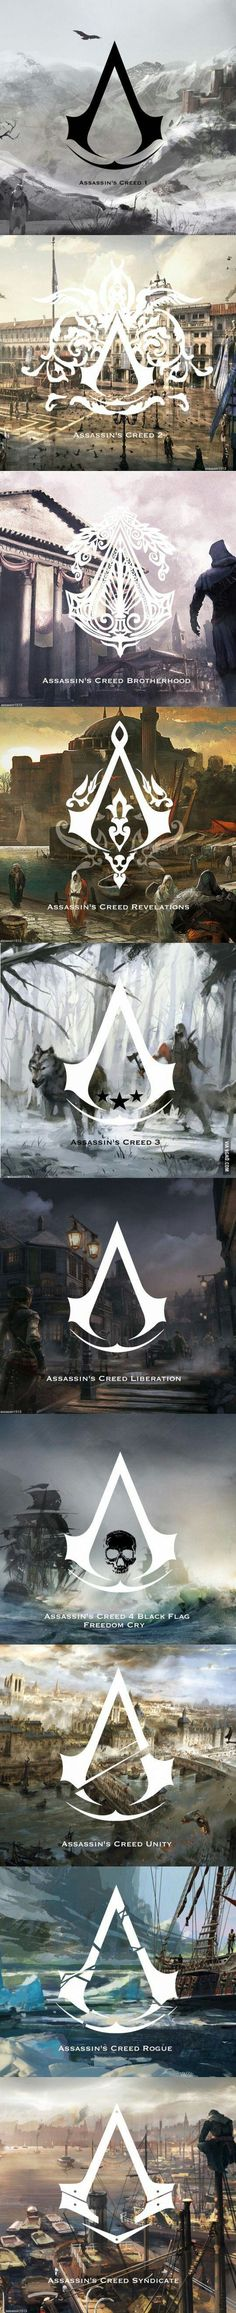 The symbols of assassin's creed